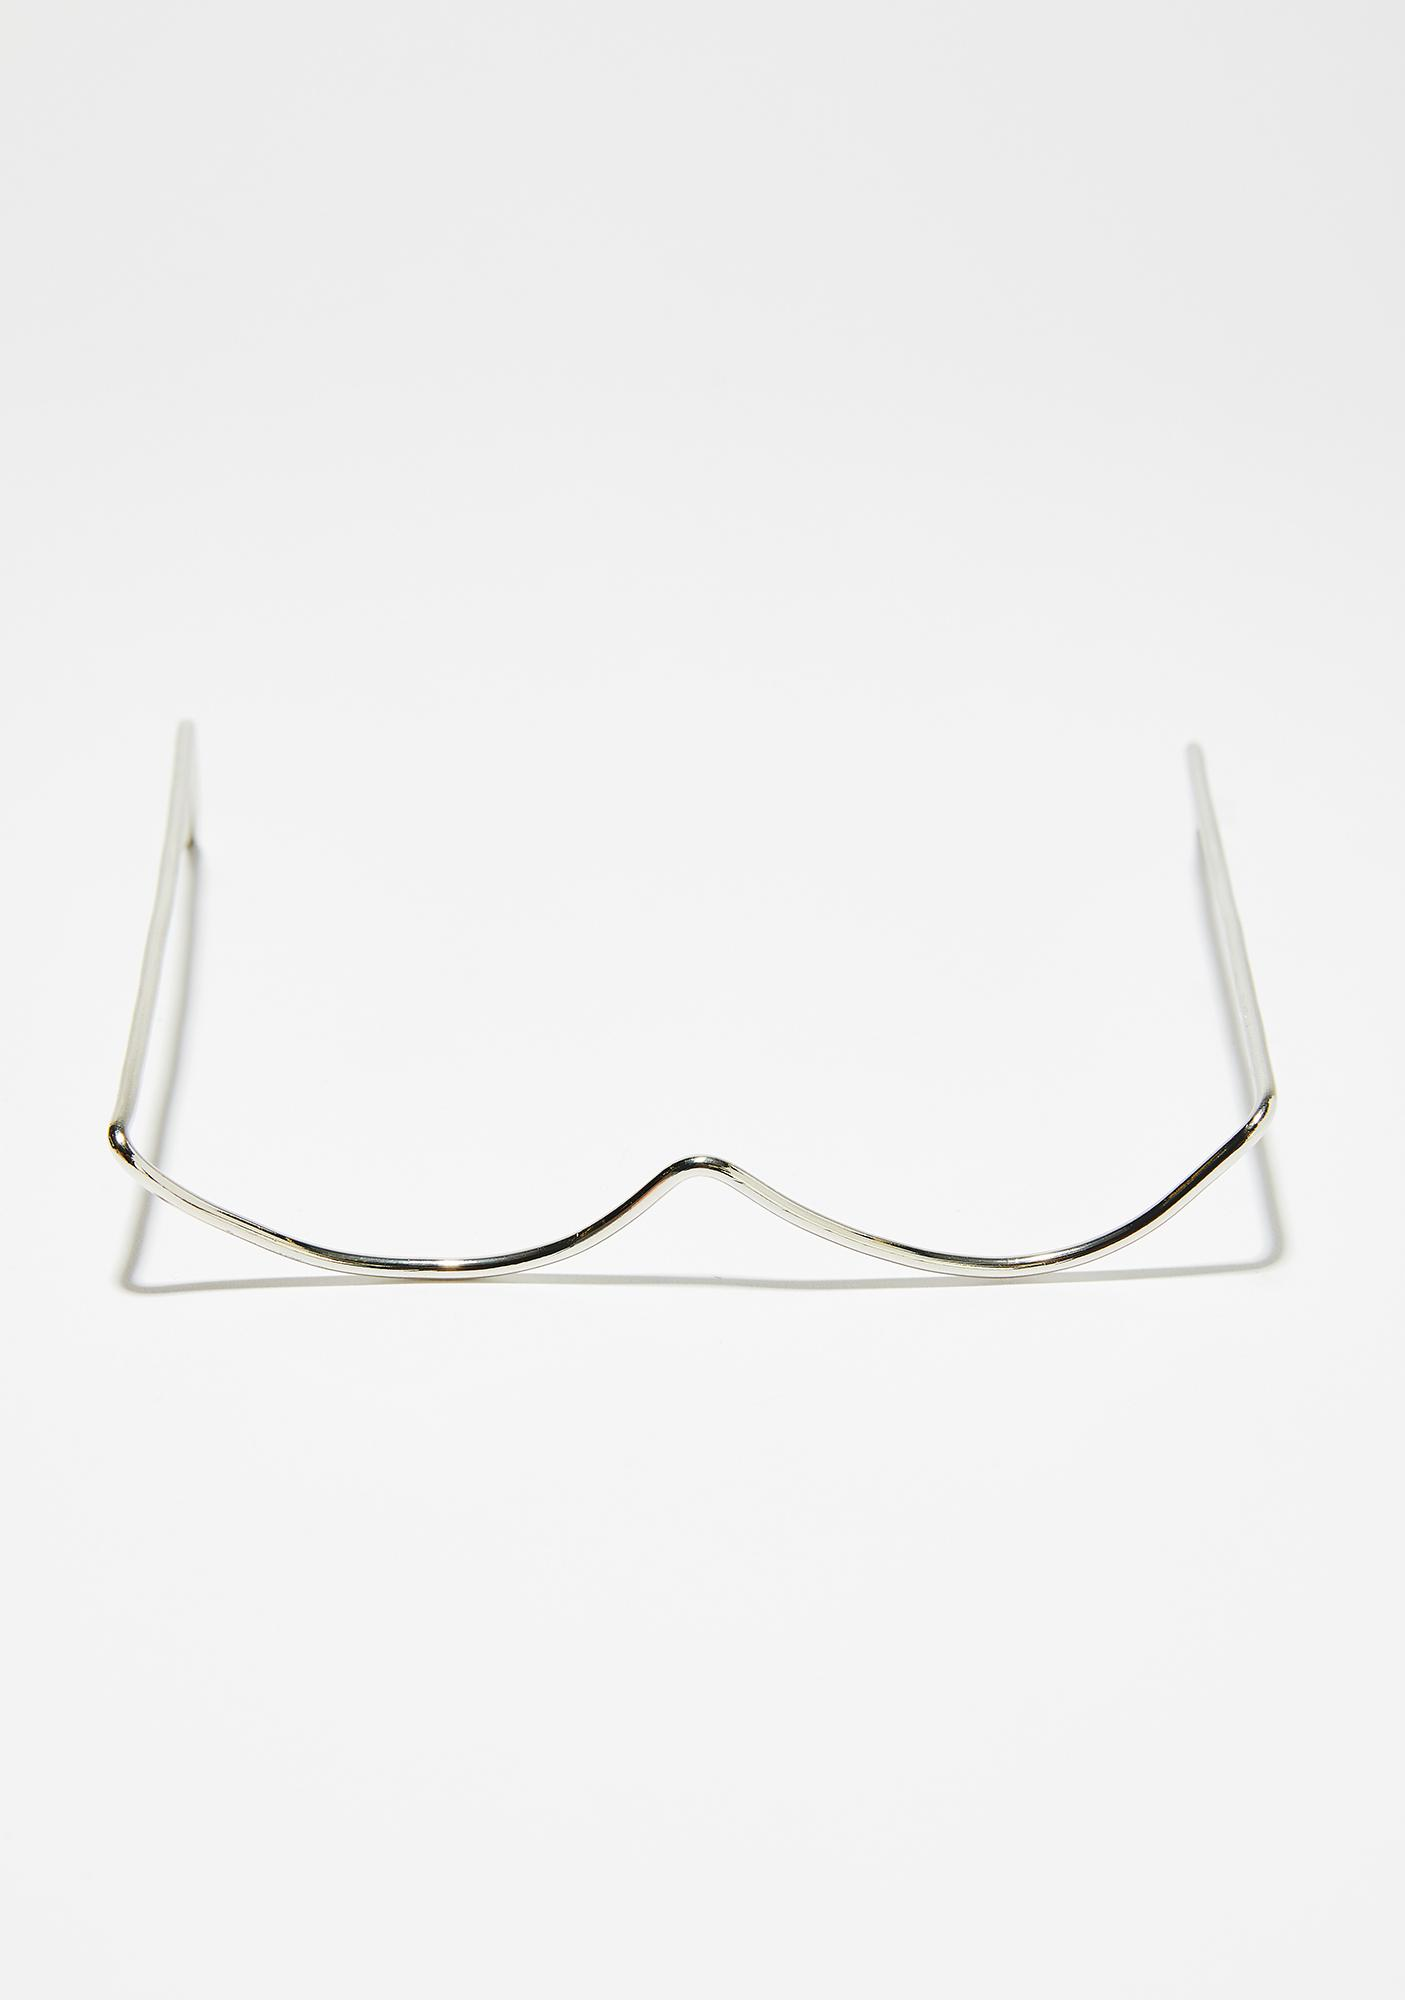 Heavy Metal Lover Wire Glasses